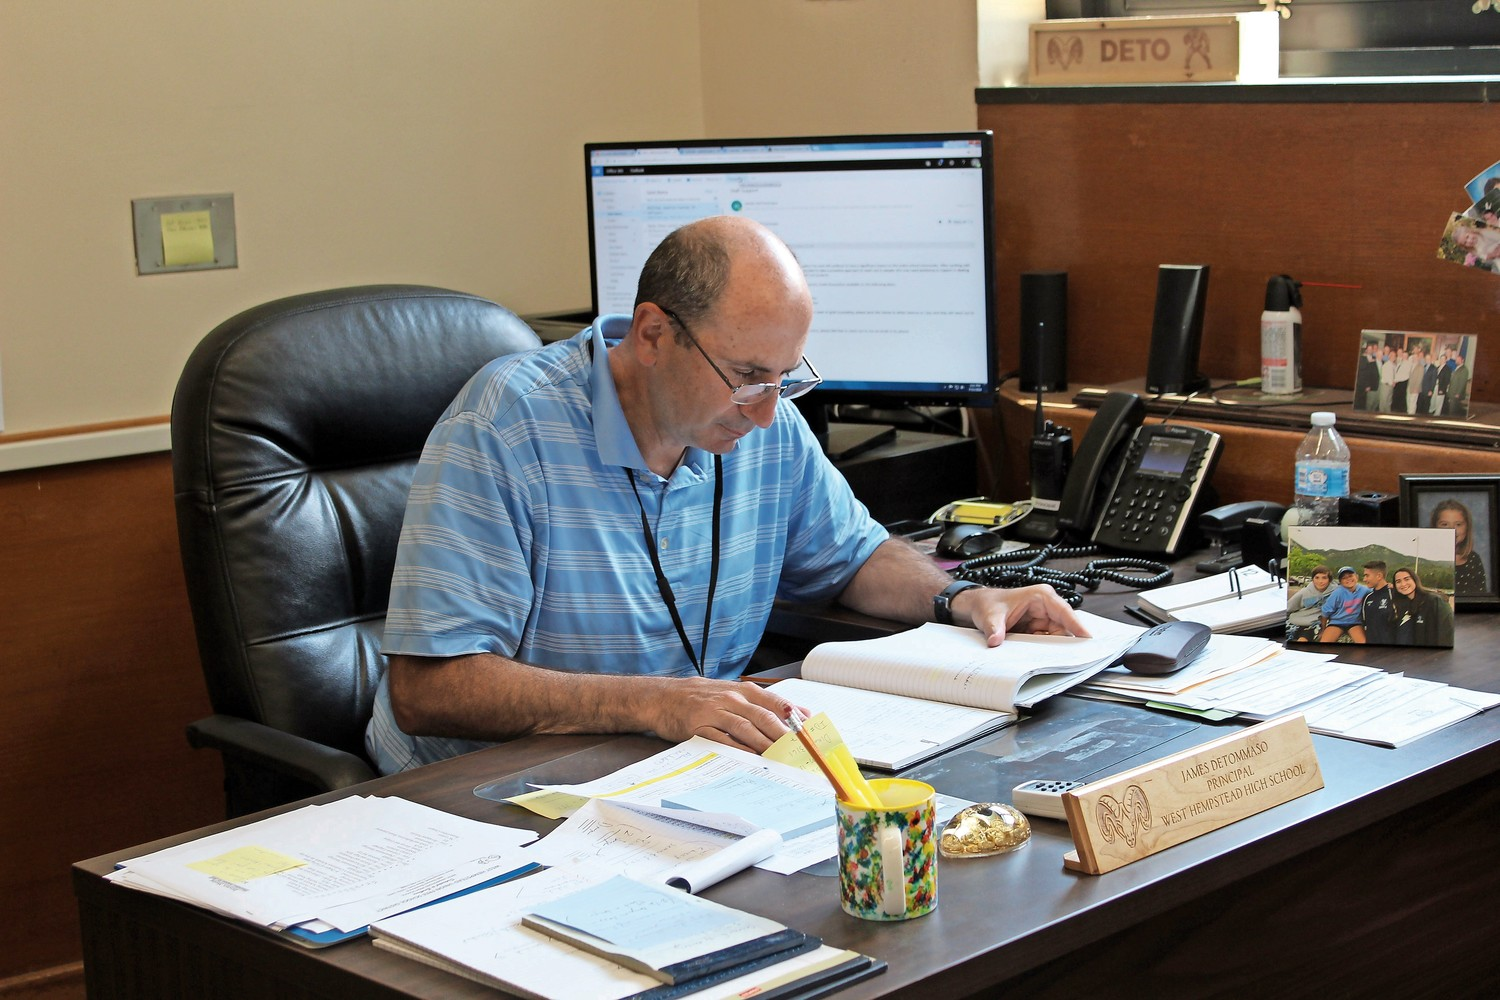 West Hempstead High School Principal James DeTommaso has already begun preparing for the upcoming school year.